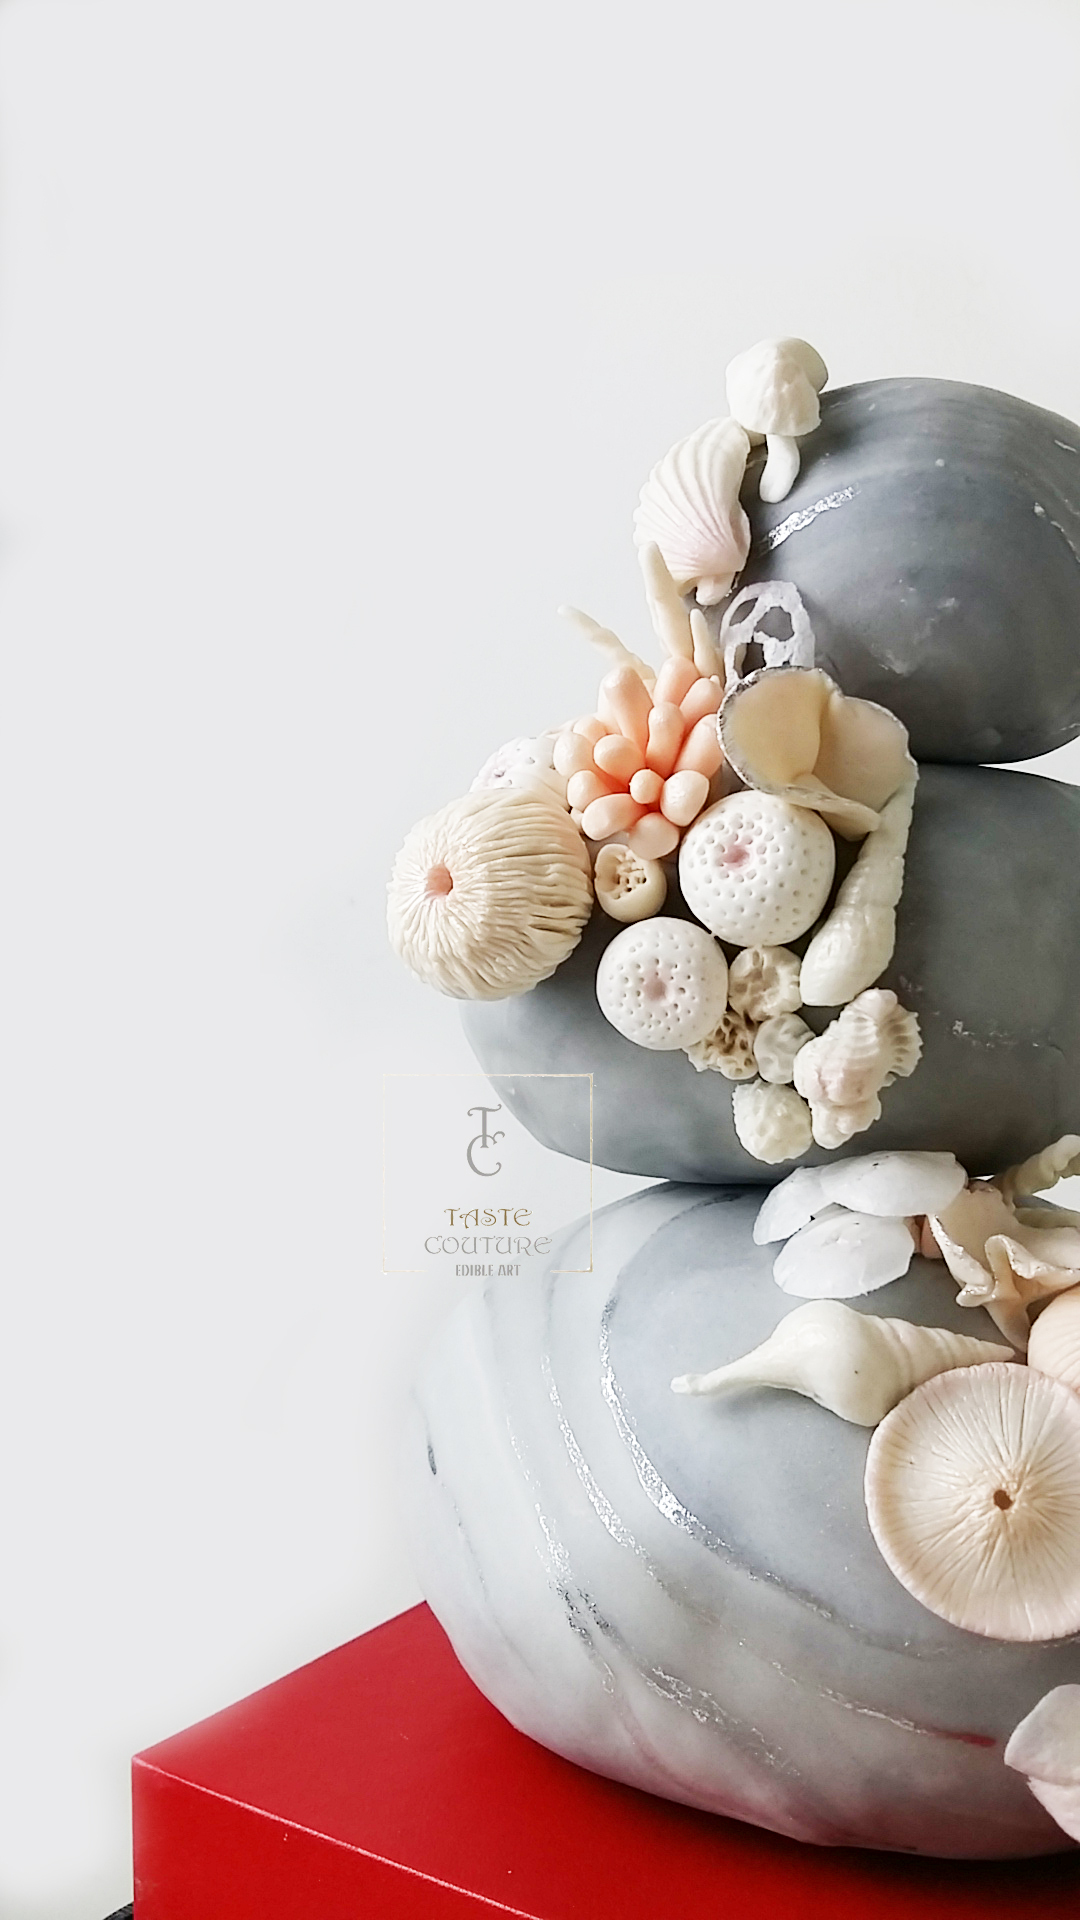 Gray stone fondant cake with seashells